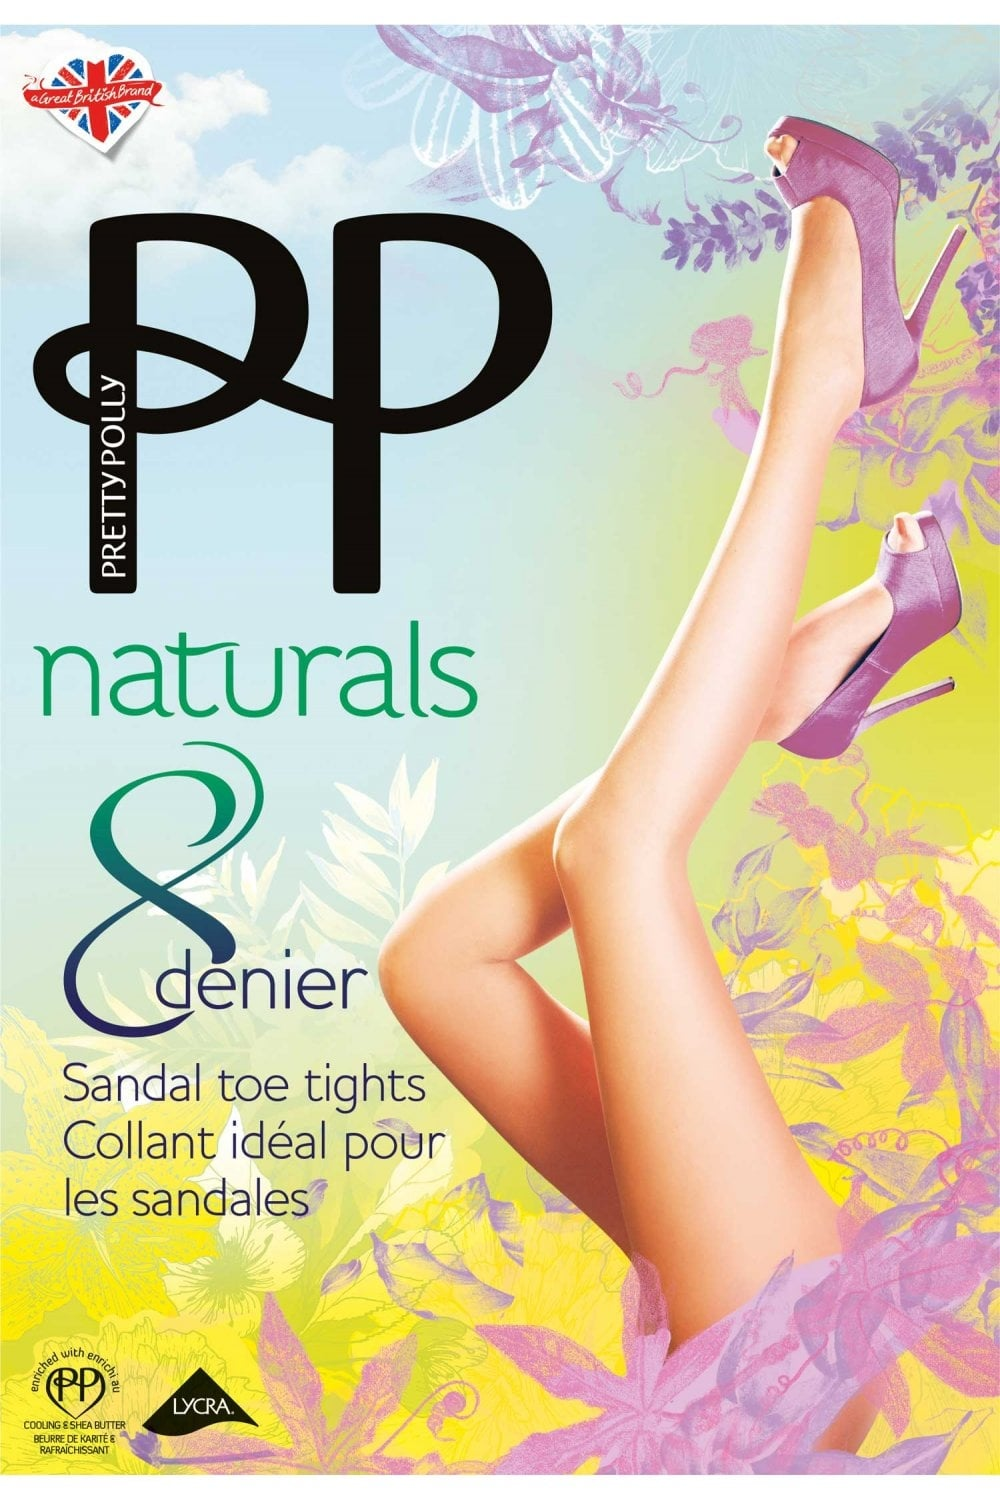 505c0917869 Naturals 8 Denier Sandal Toe Tights · Pretty Polly ...